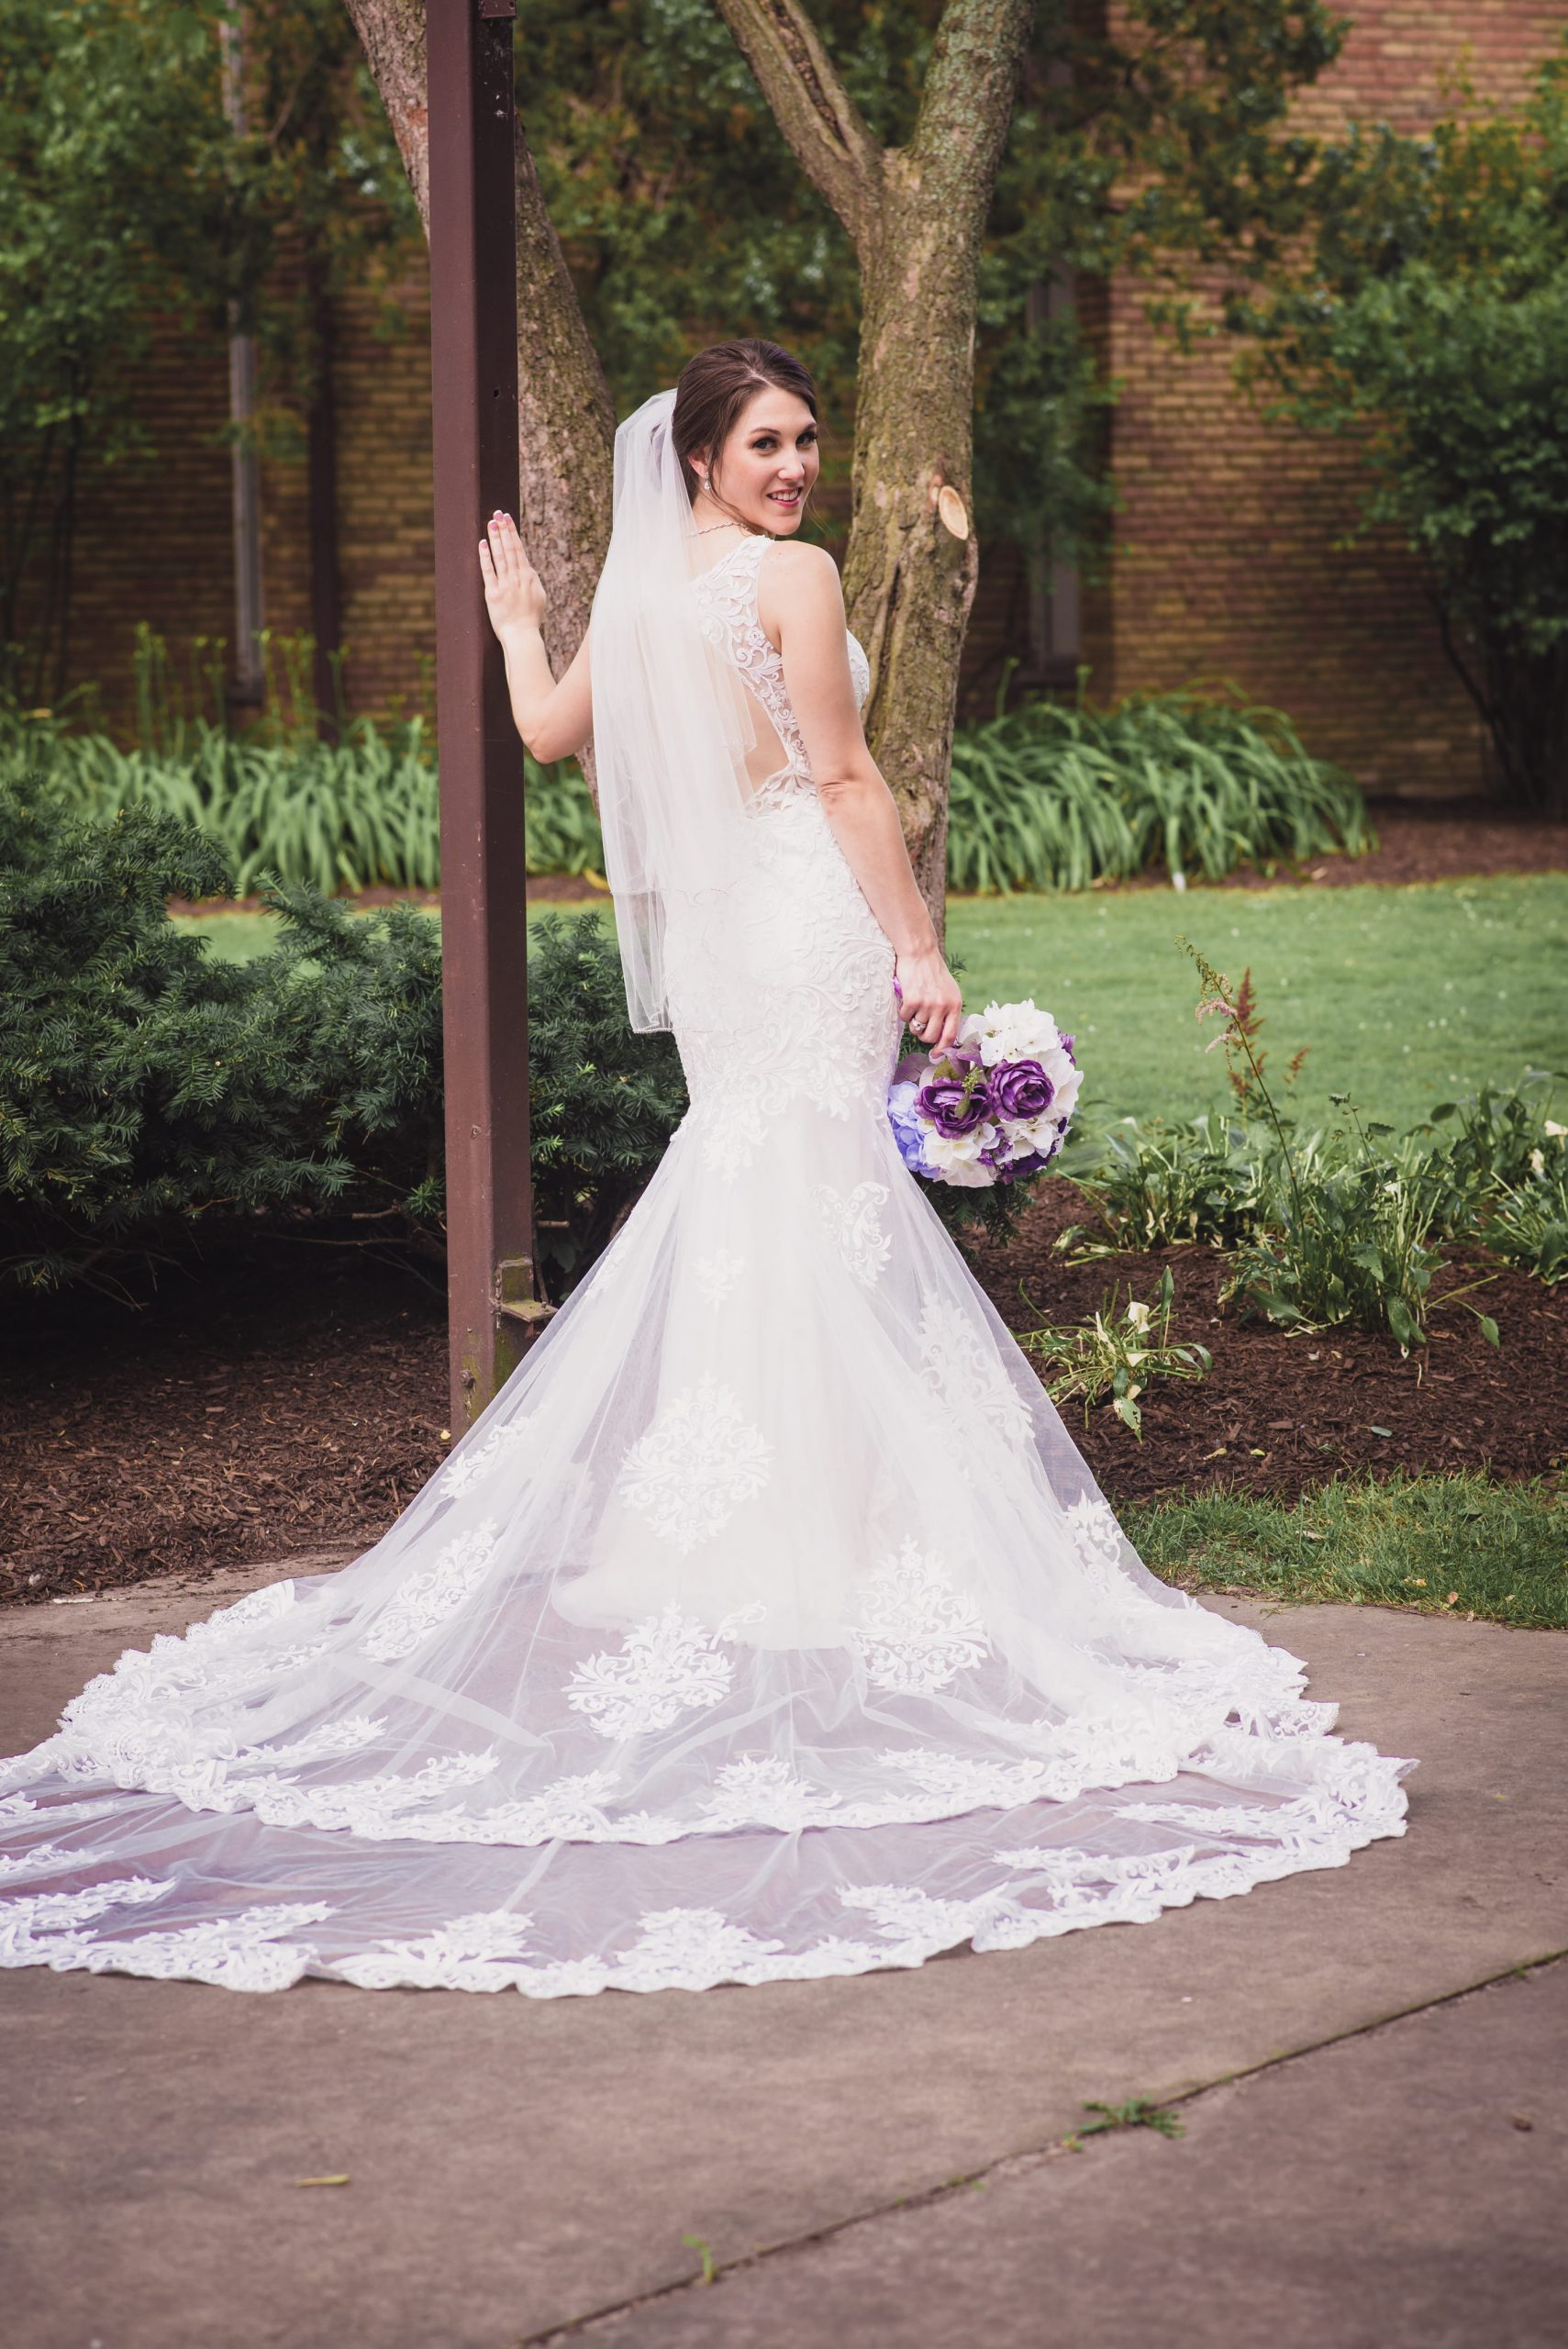 bride looking back in portrait, showing dress details